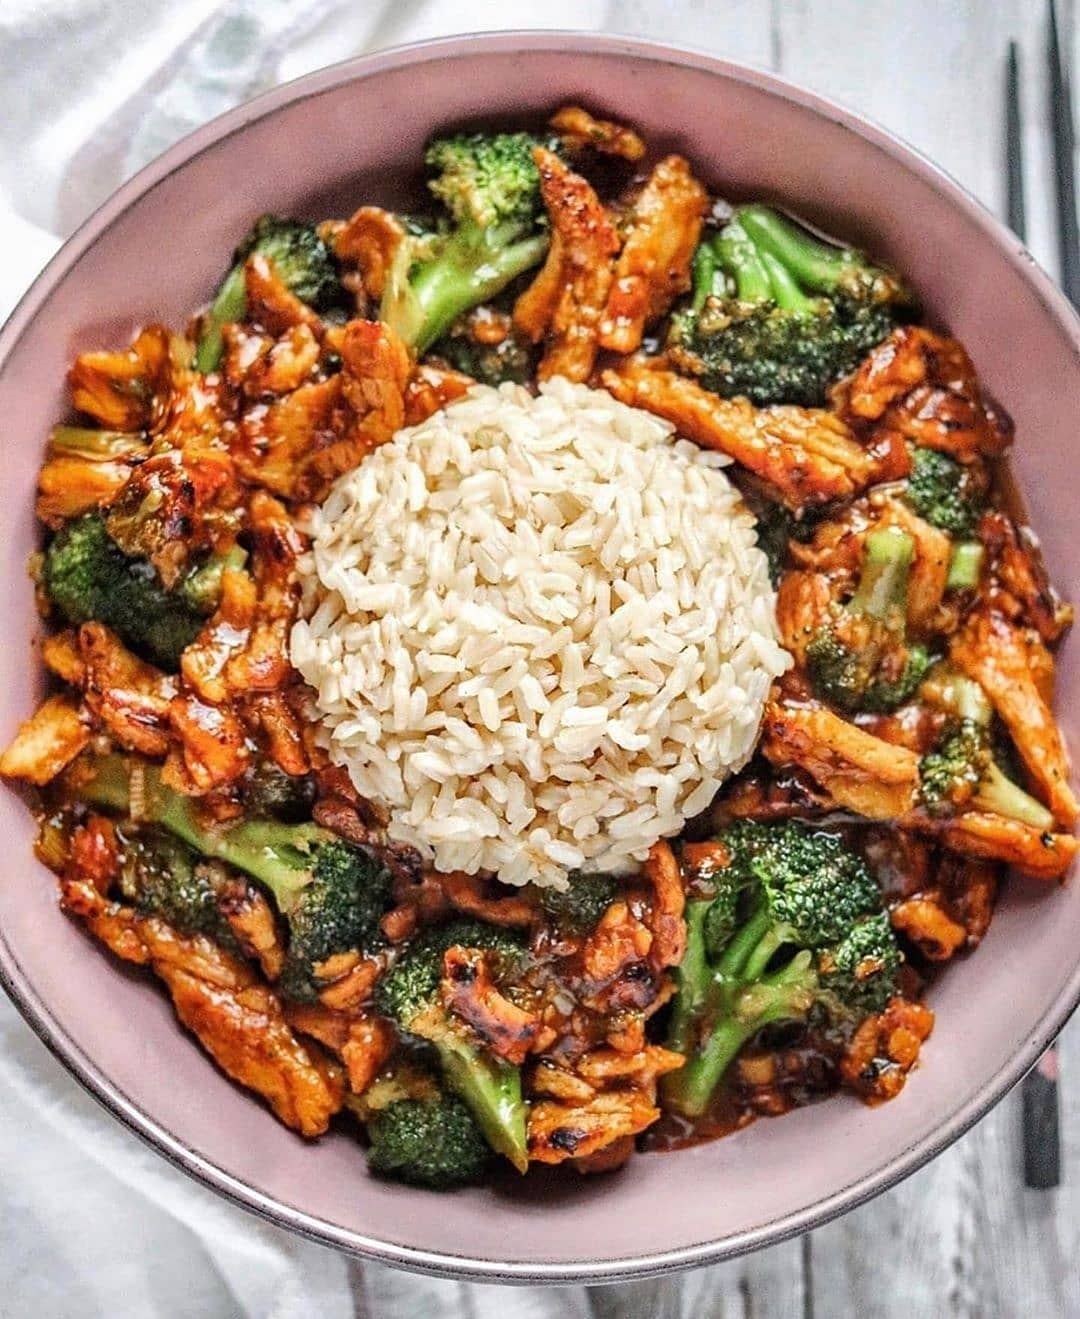 saucy soy curls with broccoli and brown rice display image  467b0574